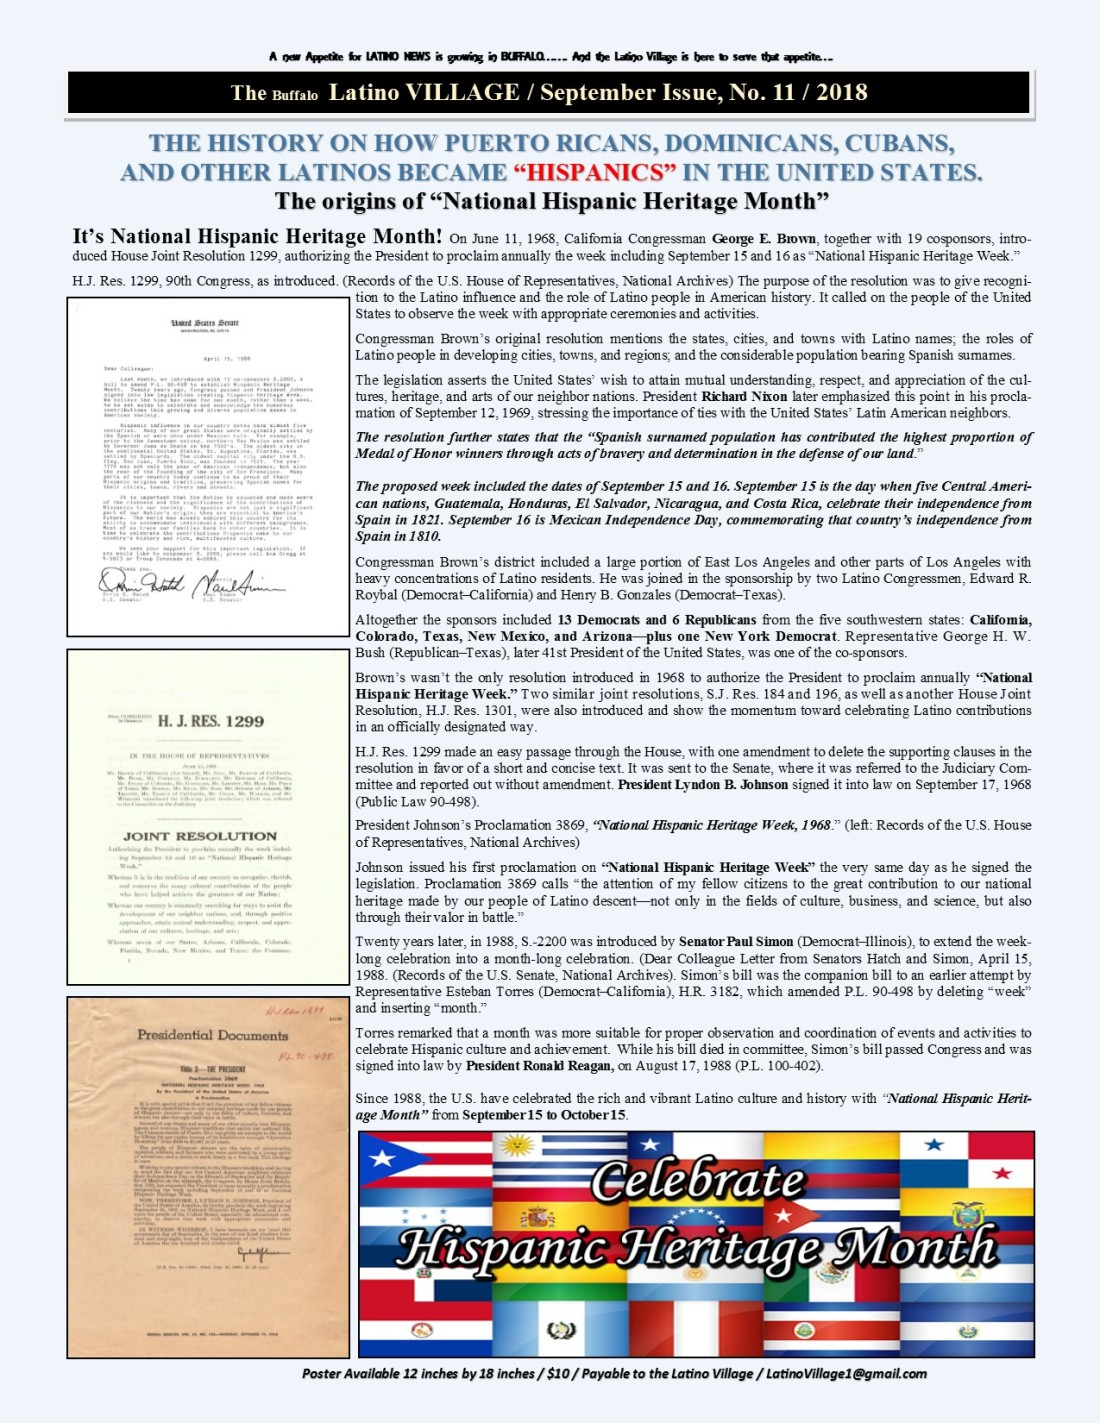 Page 8 Latino Village Newslette September Issue 2018 No. 11